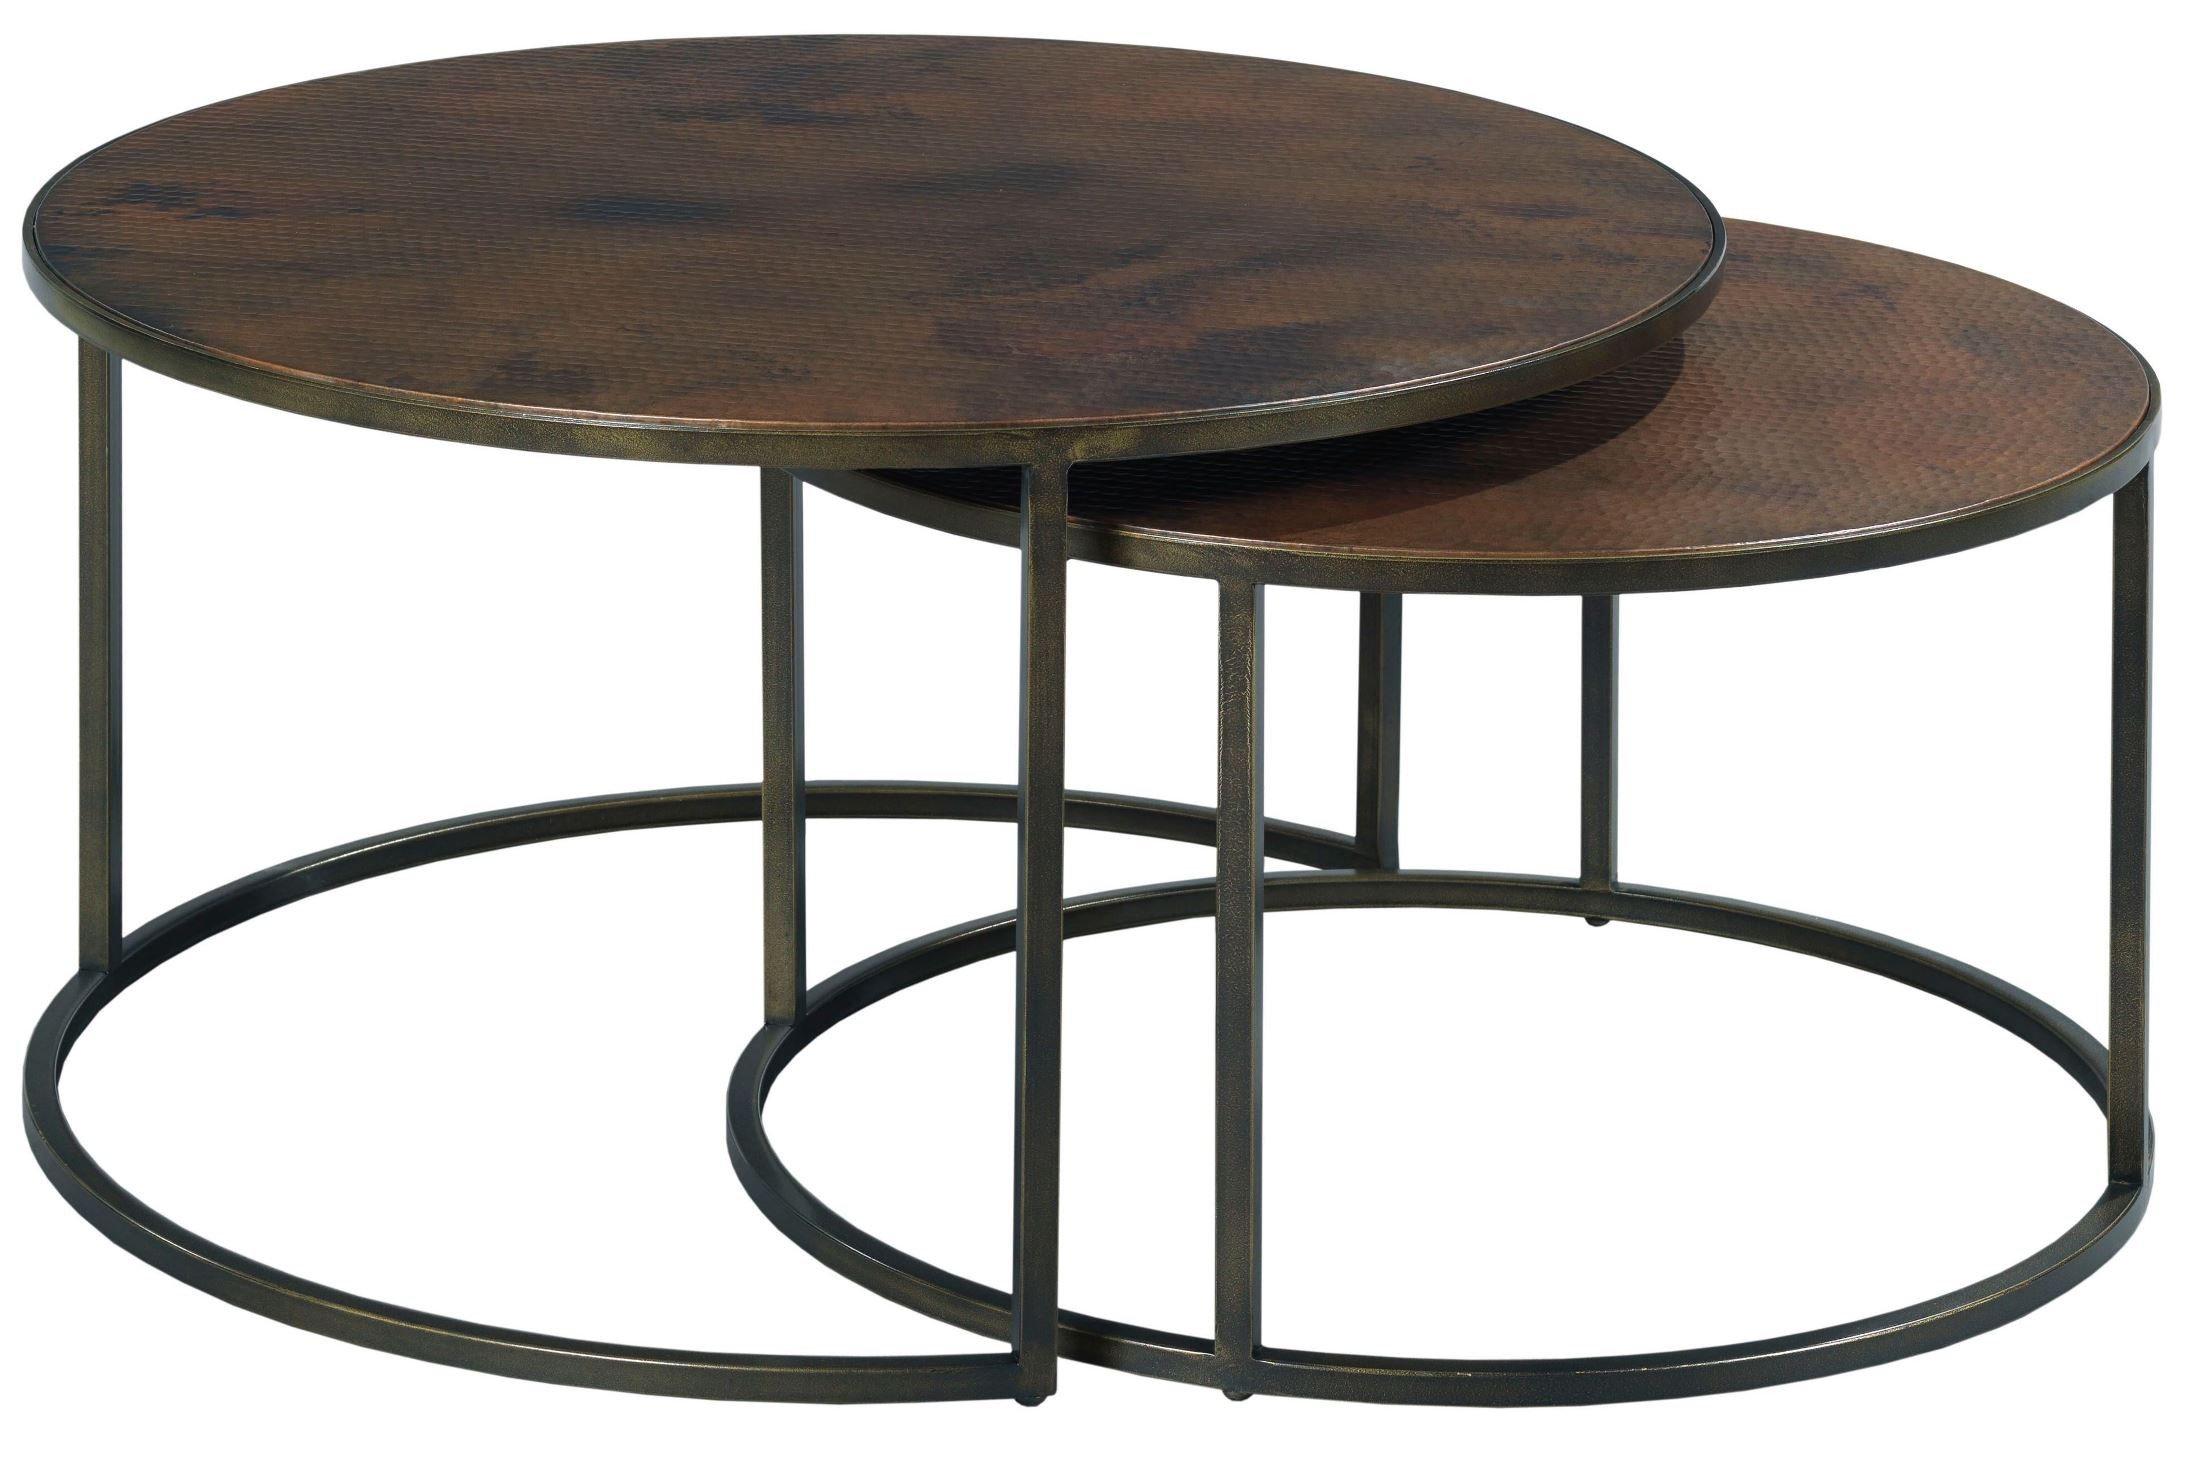 Sanford Acid Washed Copper Top Round Cocktail Table